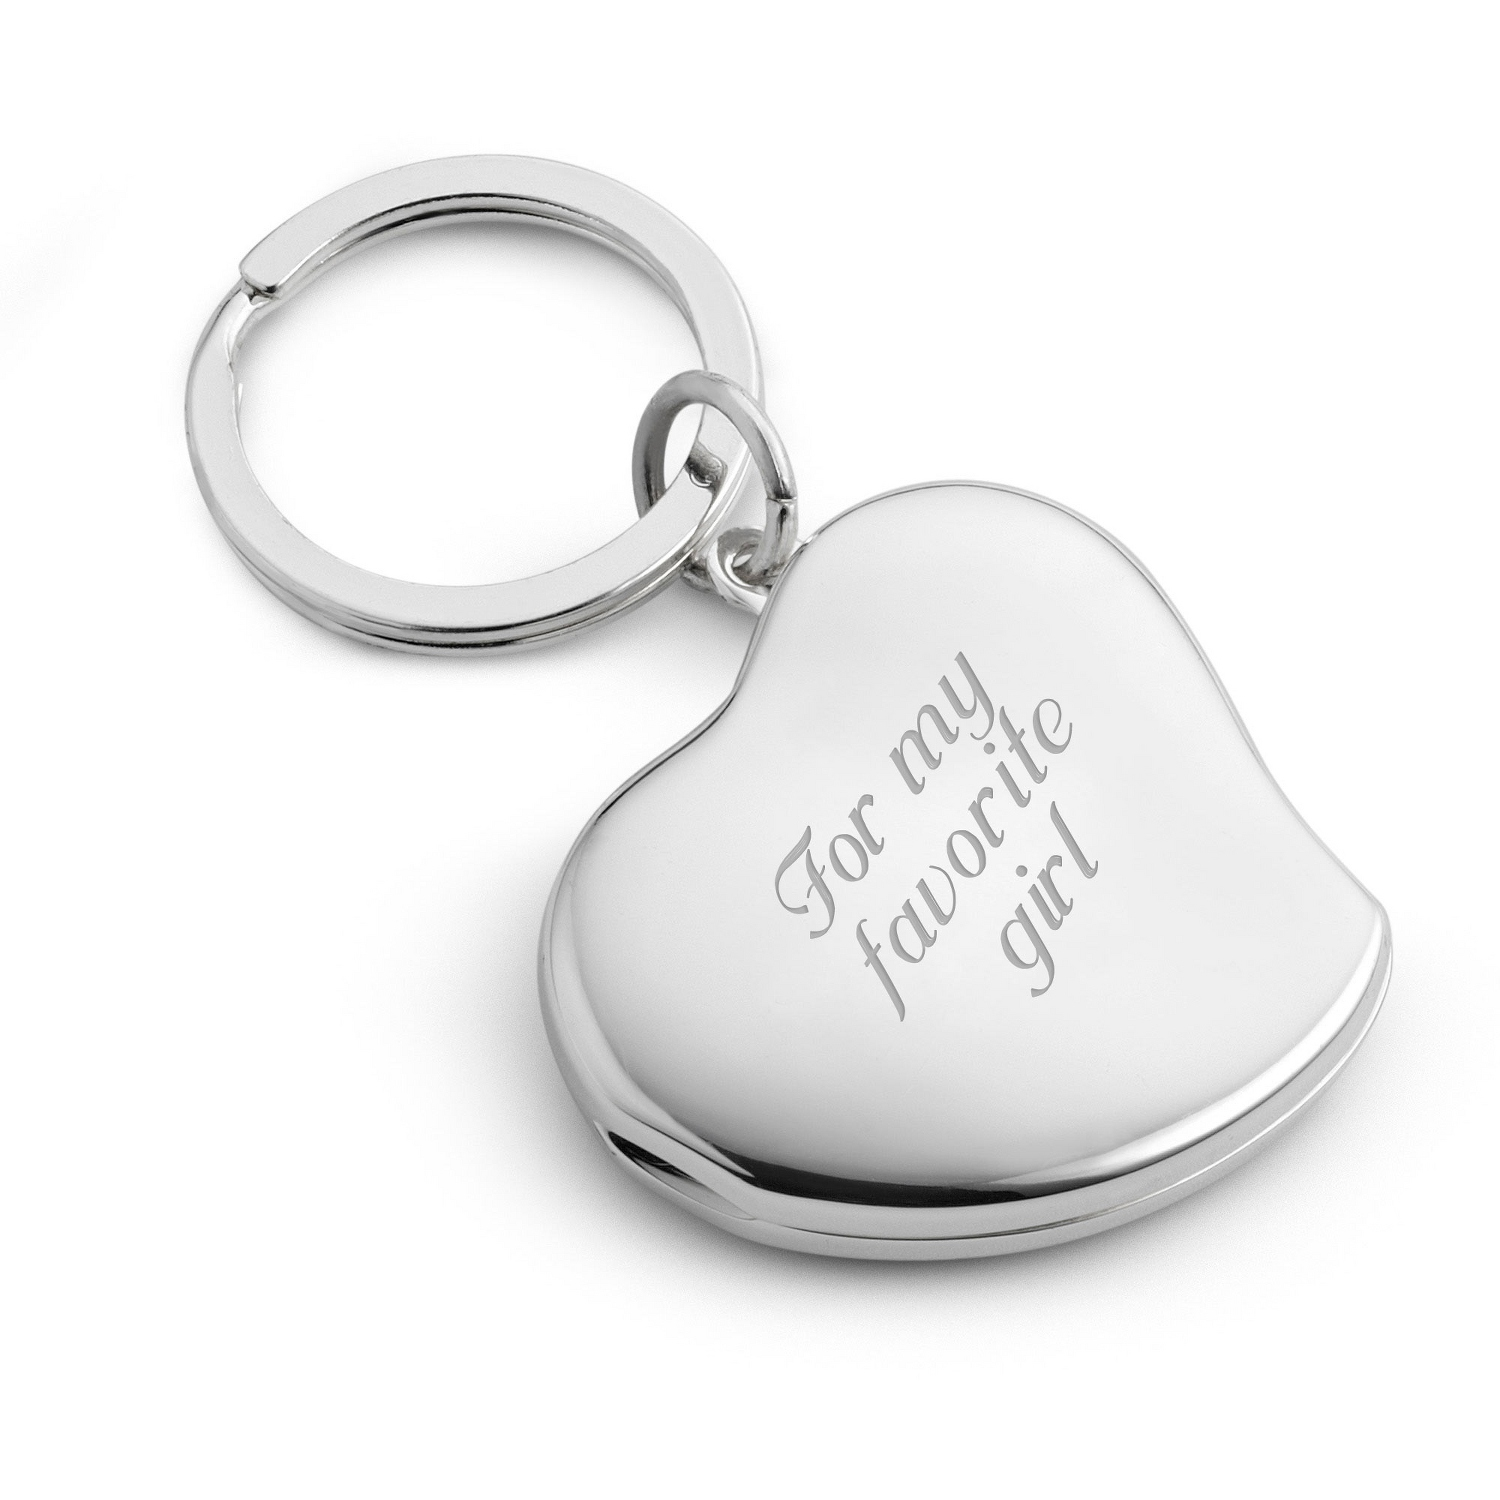 lockets silver key chain keychain memory locket